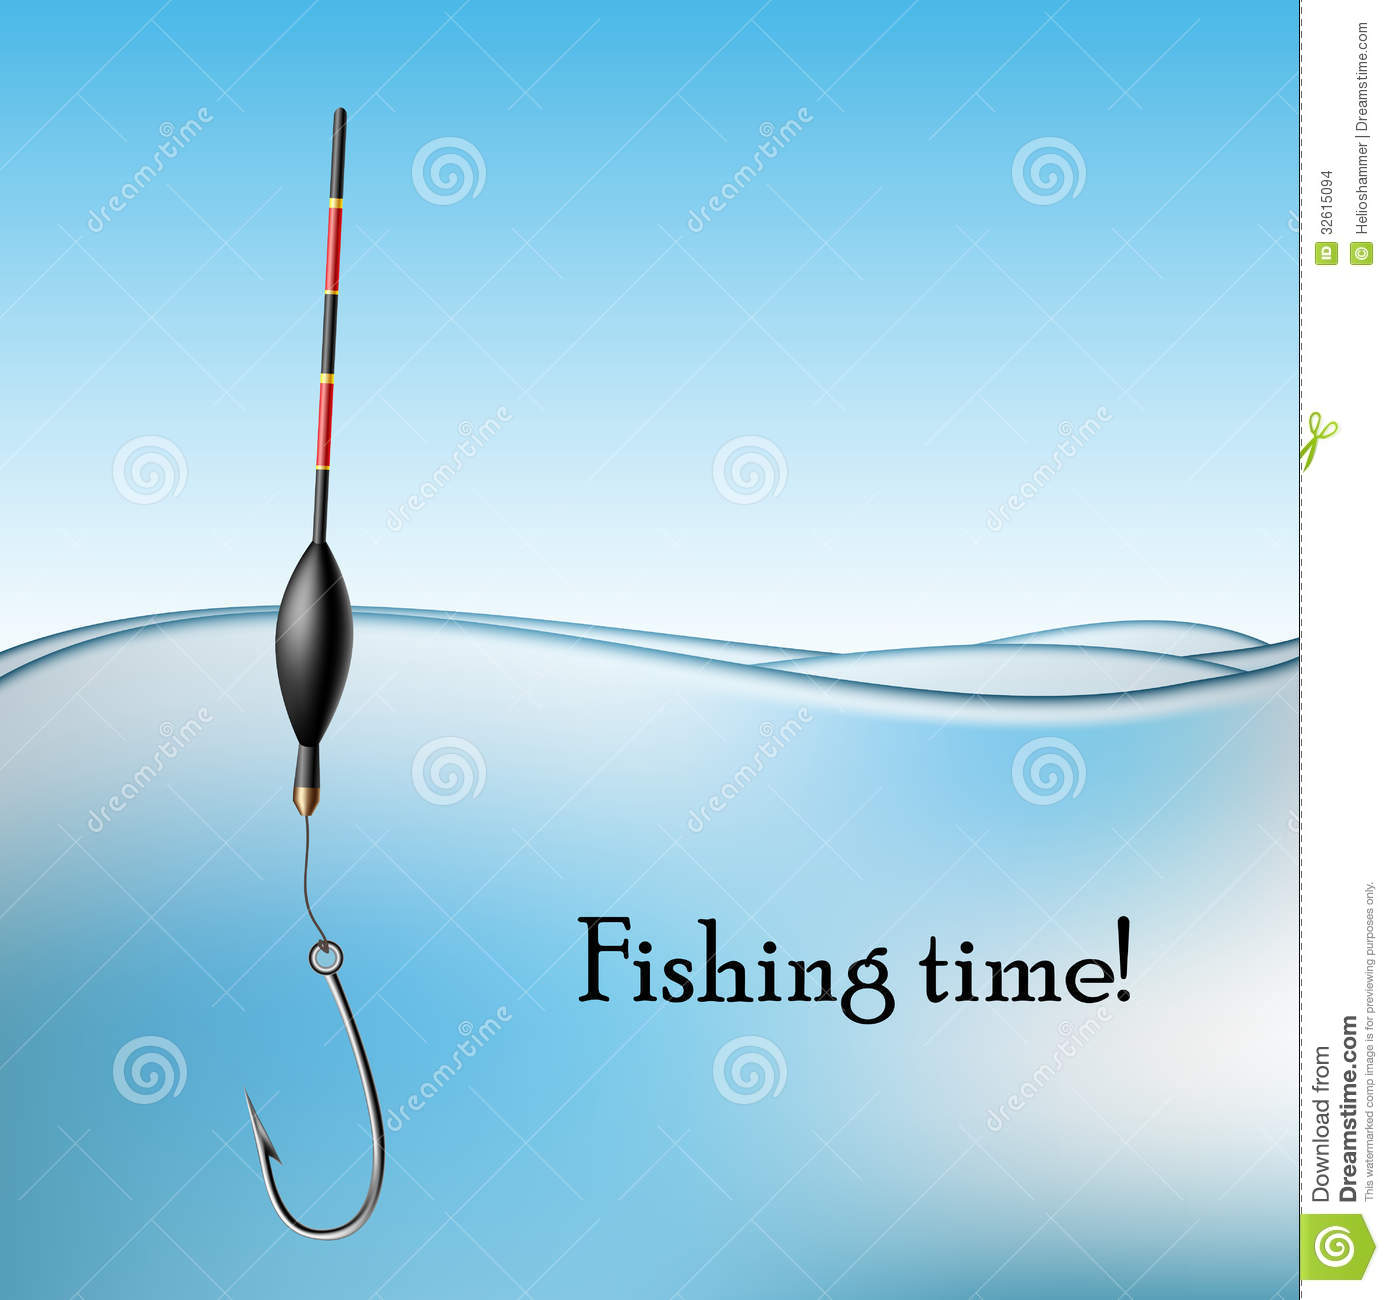 Fishing Float Royalty Free Stock Images.